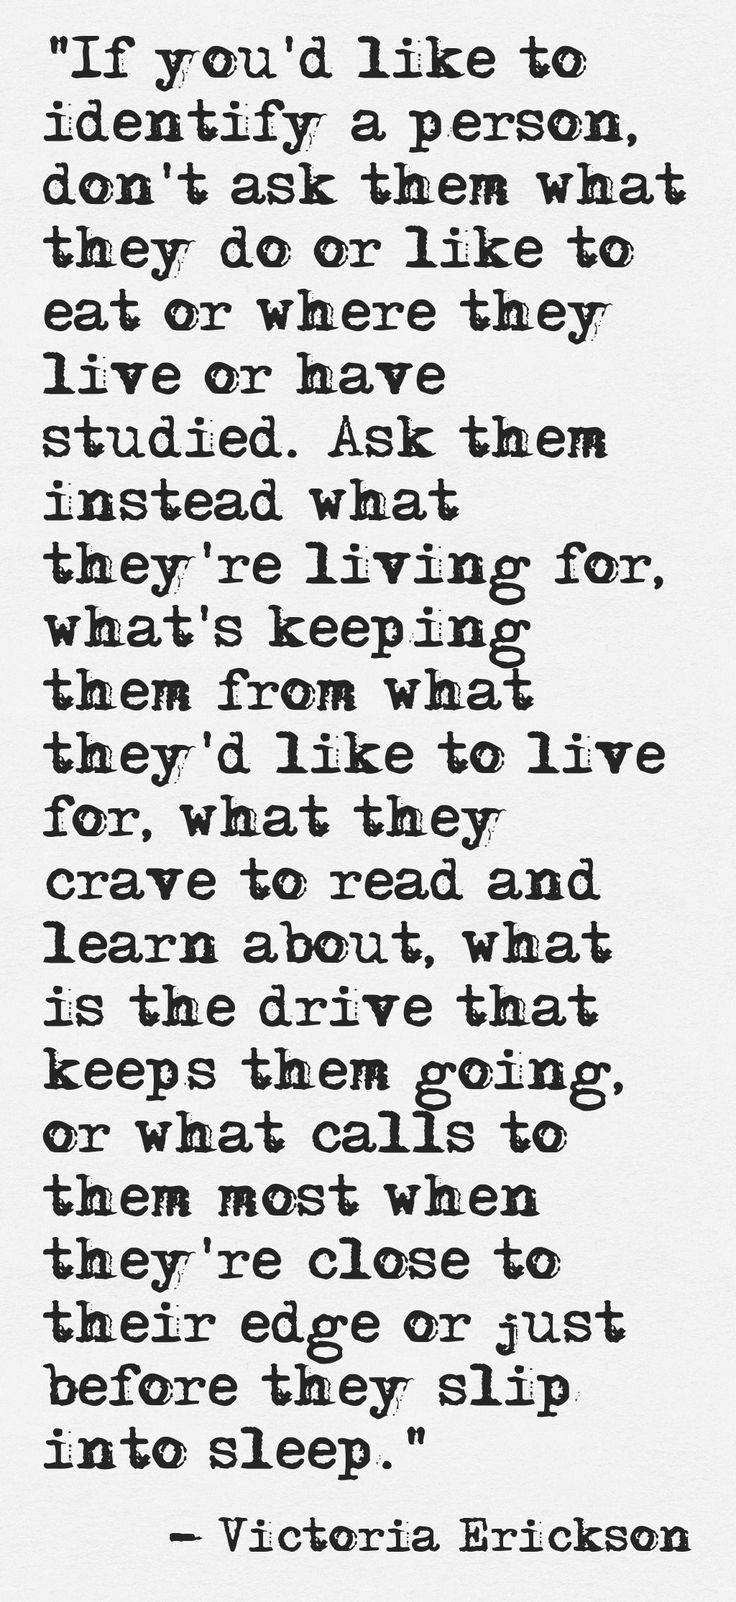 This! Finally... A quote about teaching people how to really know someone. You aren't what you do. You are not a title.. Mother, sister, coworker, friend. You are how you feel, what you dream about, and what you desire.